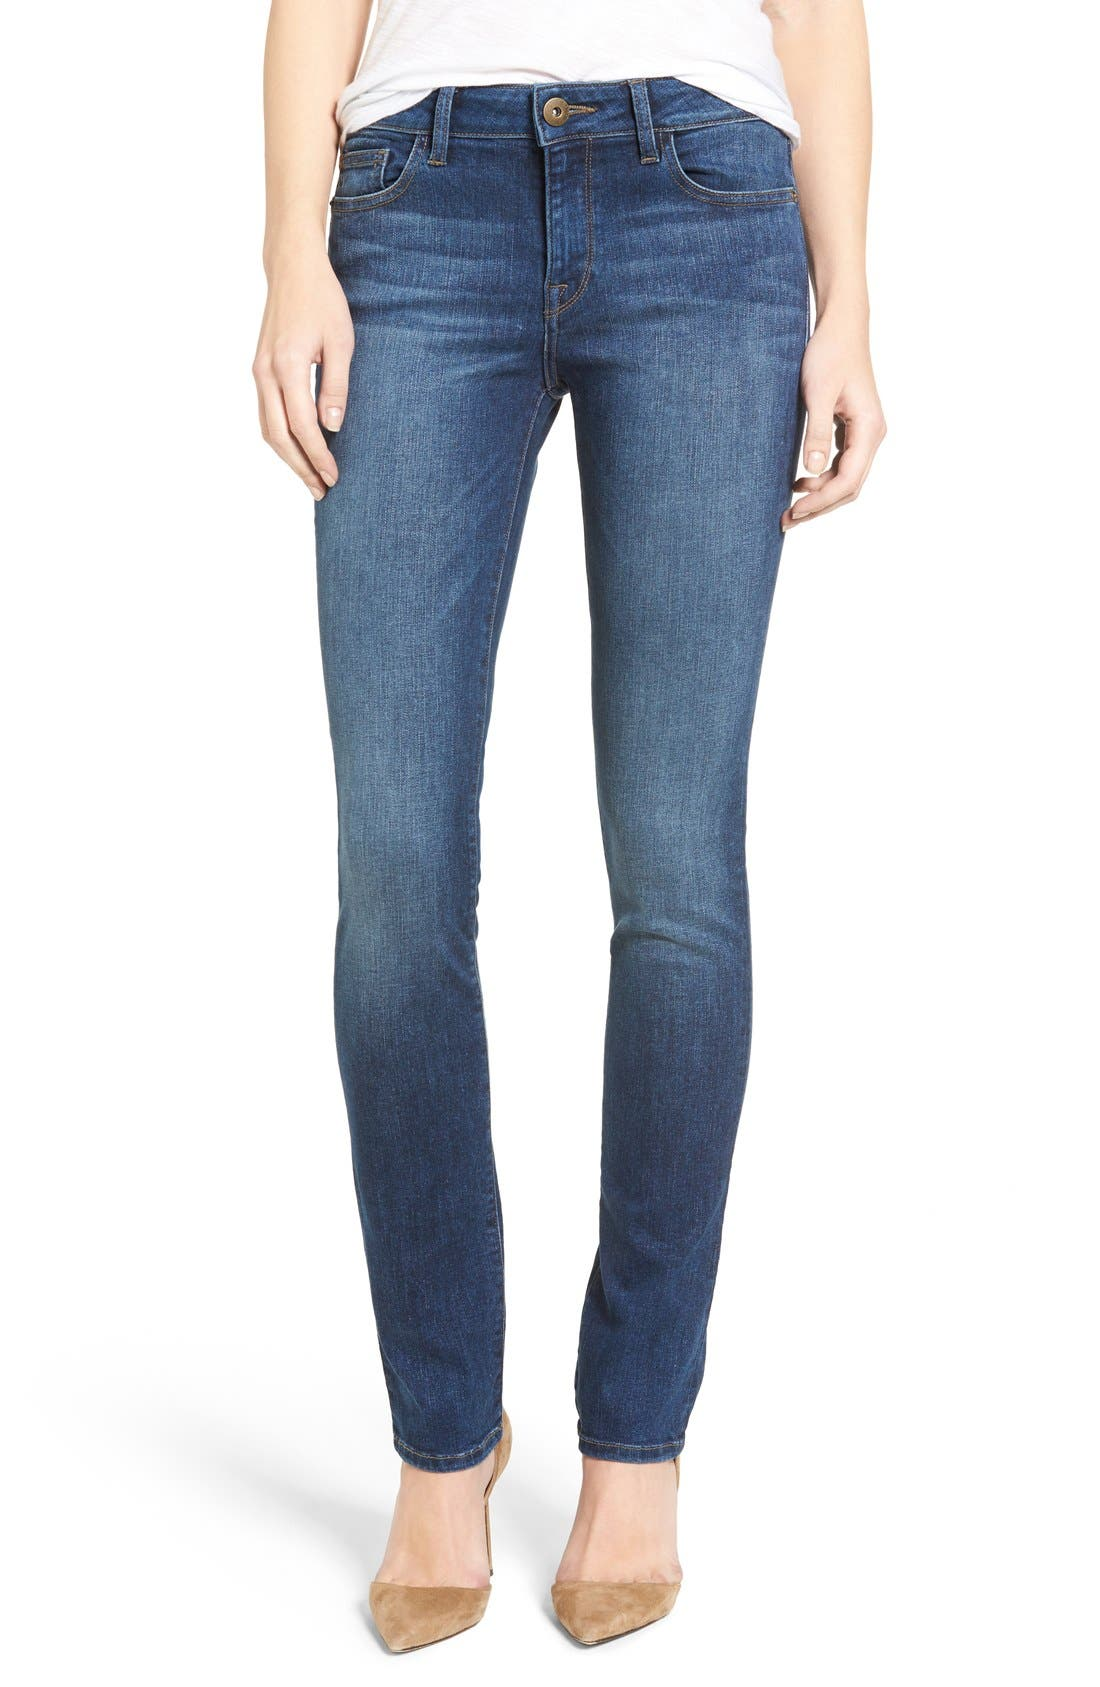 Alternate Image 1 Selected - DL1961 Mara Straight Leg Jeans (Titan)